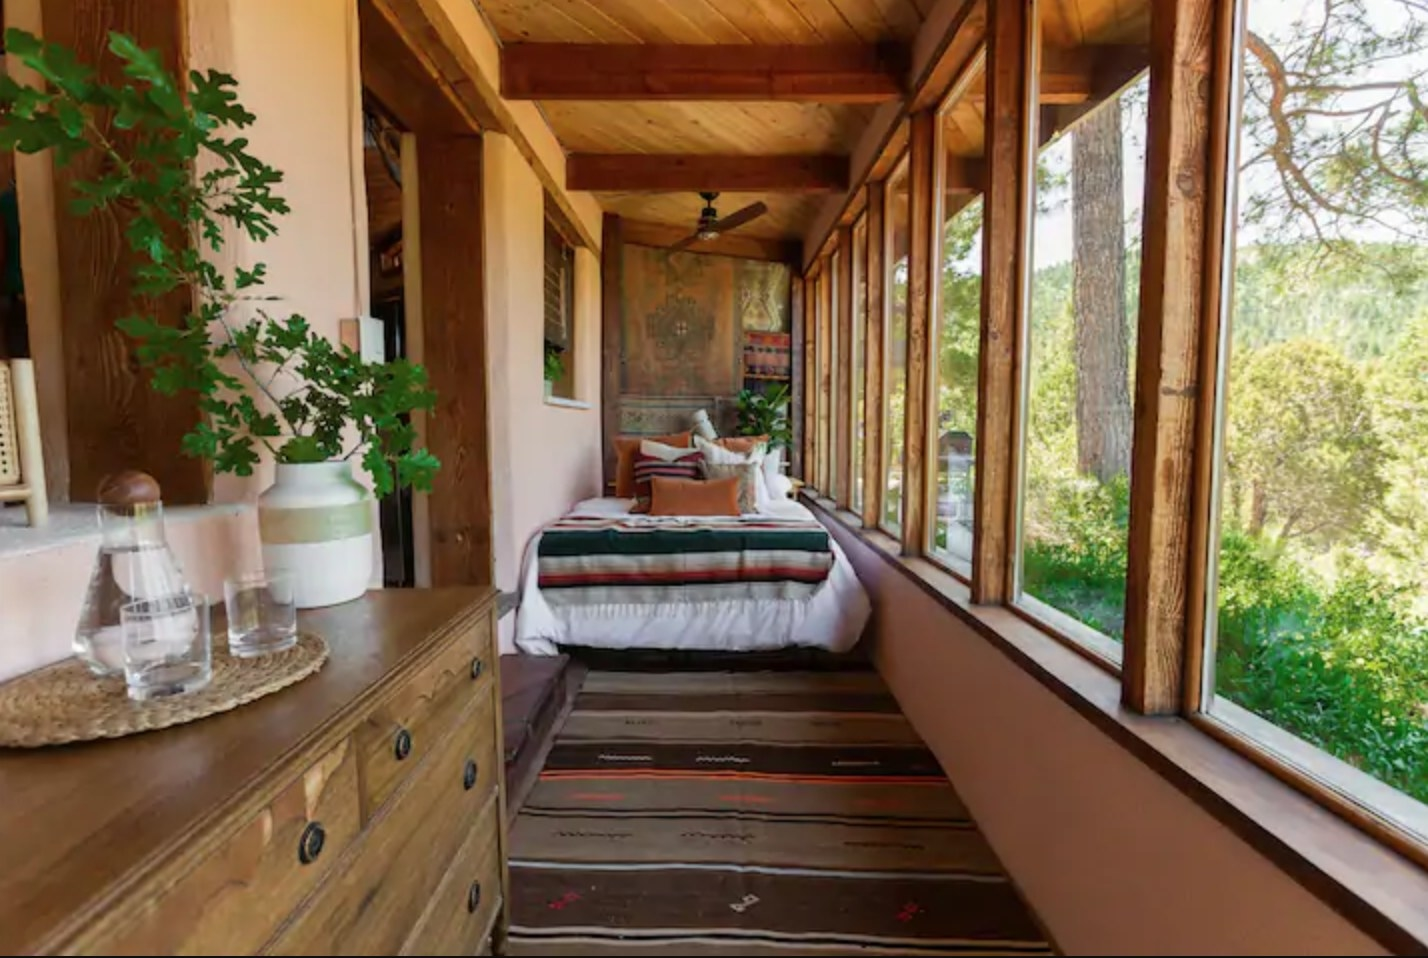 A bed dressed in warm-toned pillows sits nestled in a narrow space between a wall and a large glass window that extends all the way across the room and looks out into the forest.